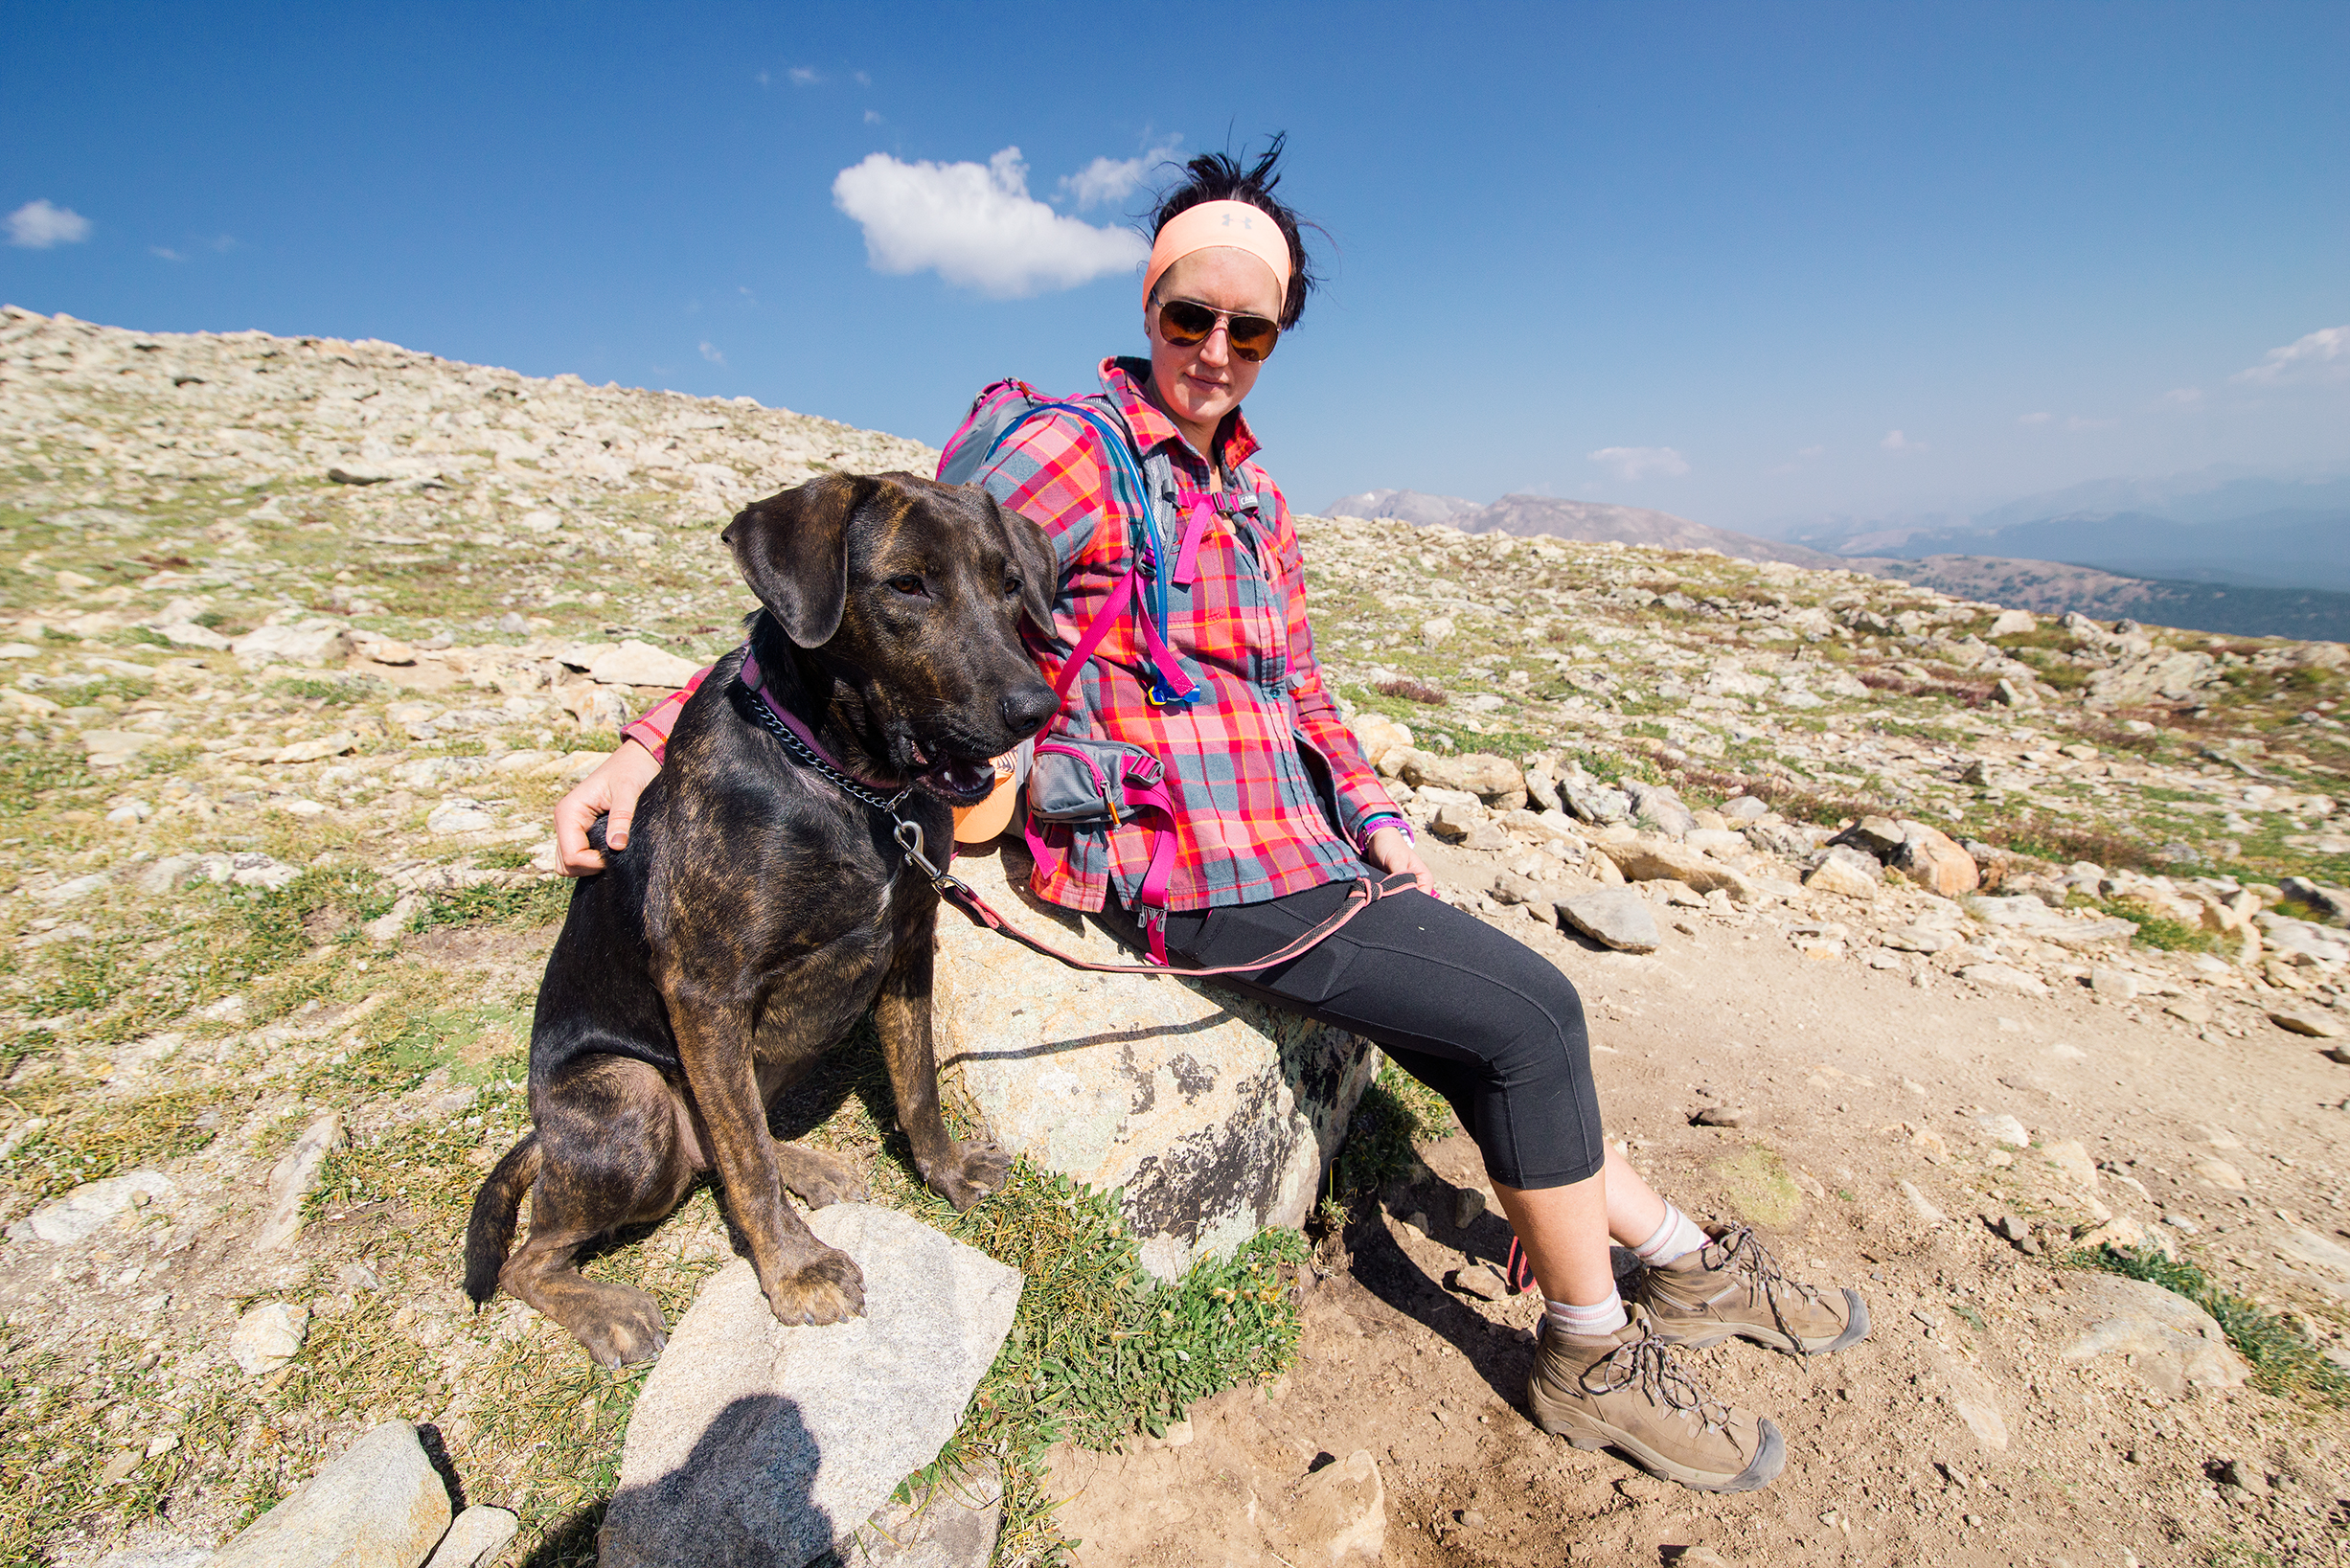 Puppy and Friend on Mount Elbert Hike